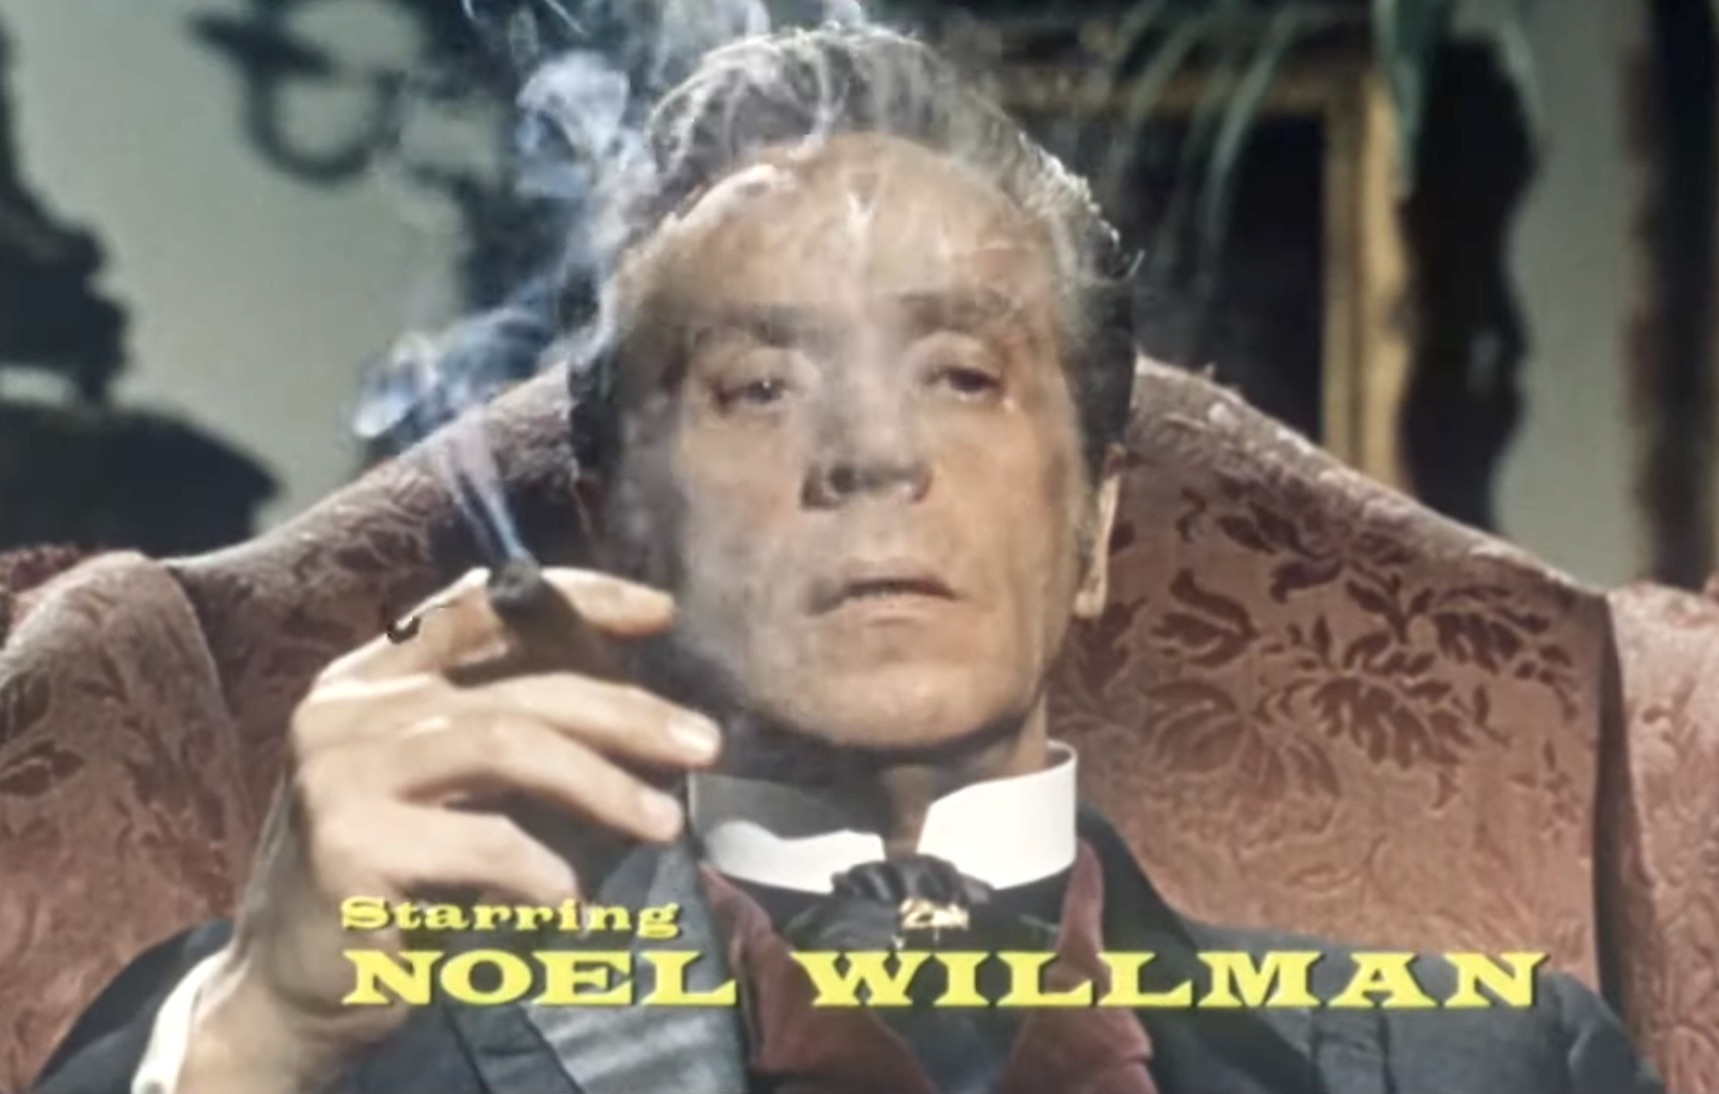 Noel Willman as Dr. Franklyn in The Reptile